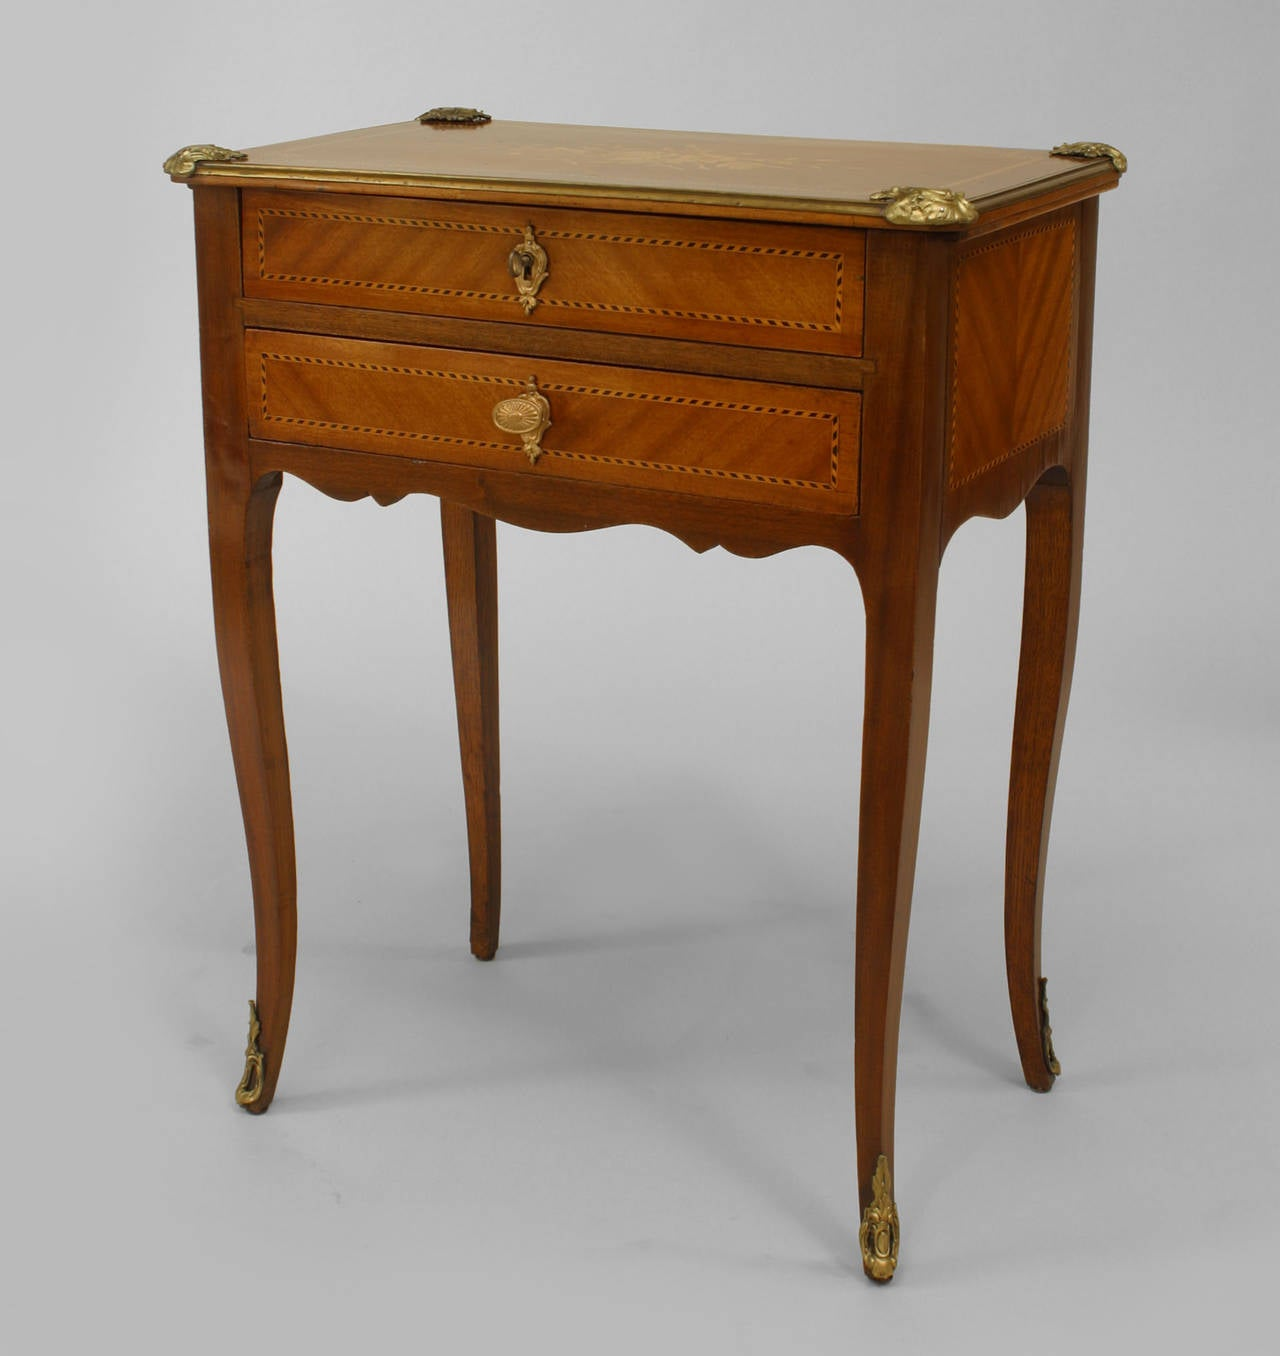 19th c french louis xv style kingwood end table or small desk for sale at 1stdibs - Table louis xv ...